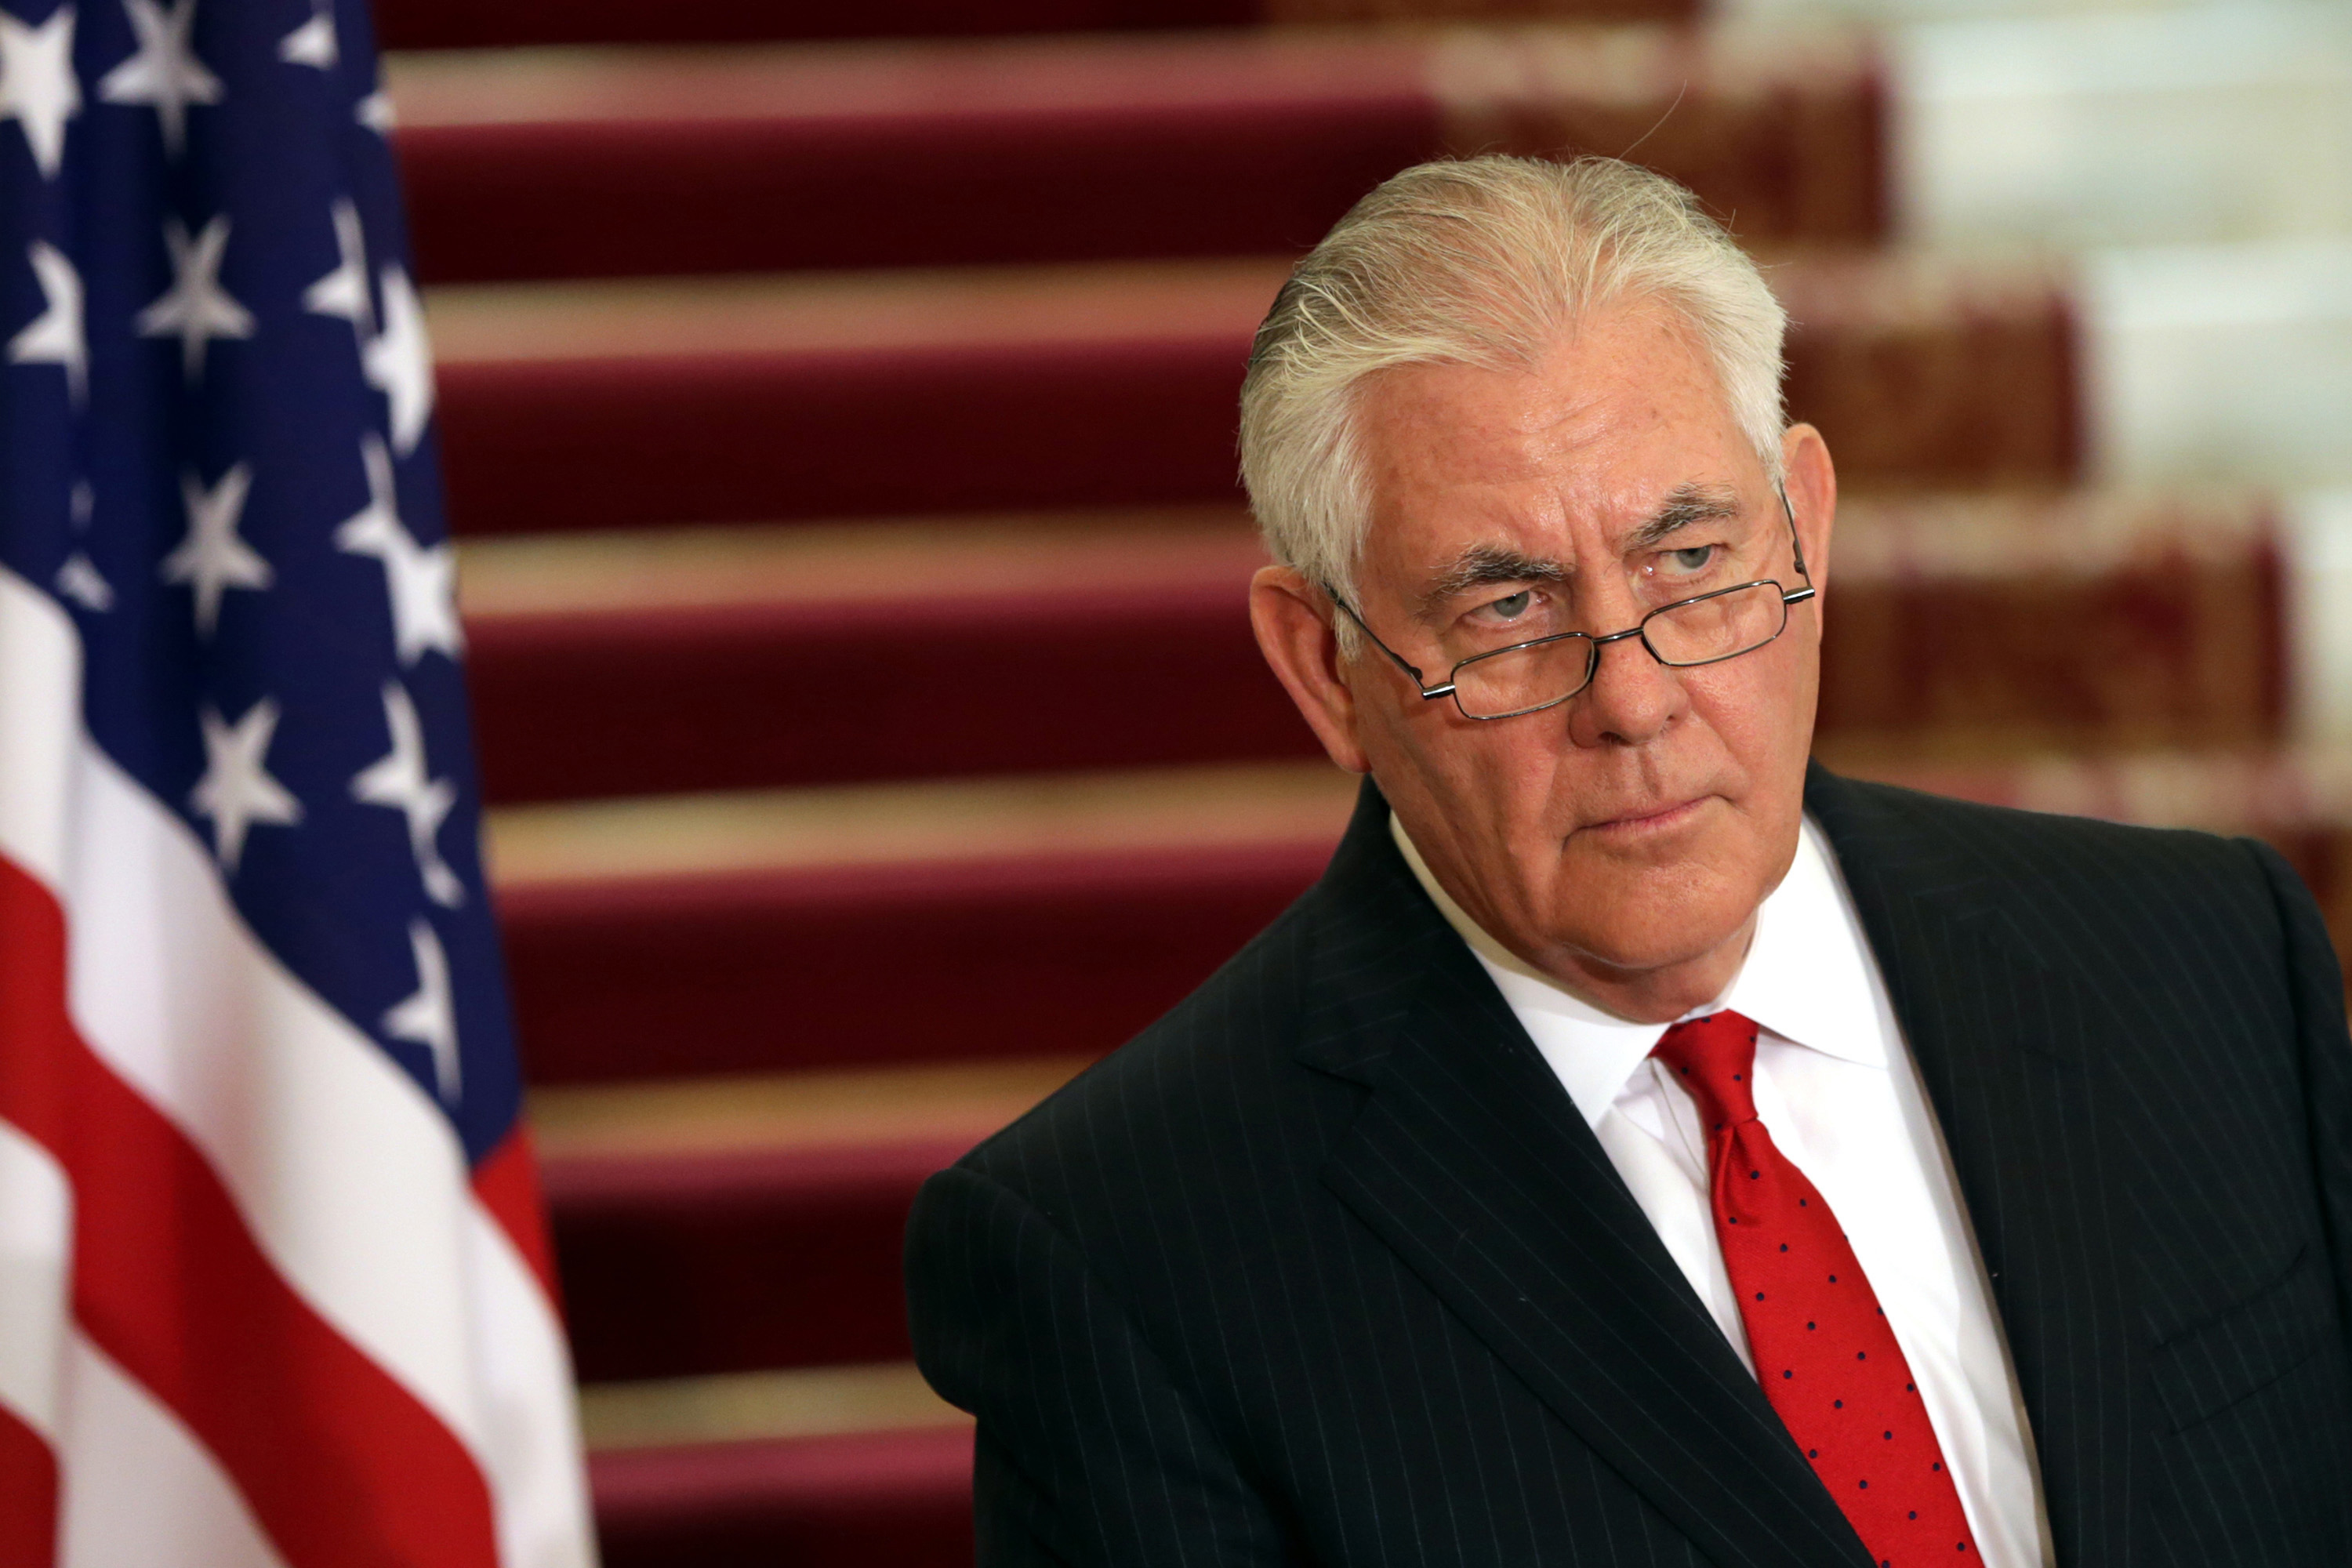 """Secretary of State Rex Tillerson during a news conference in Cairo, Egypt, on Feb. 12, 2018. Tillerson warned Wednesday that """"going wobbly"""" on truth endangers American democracy. (Xinhua/Sipa USA/TNS)"""